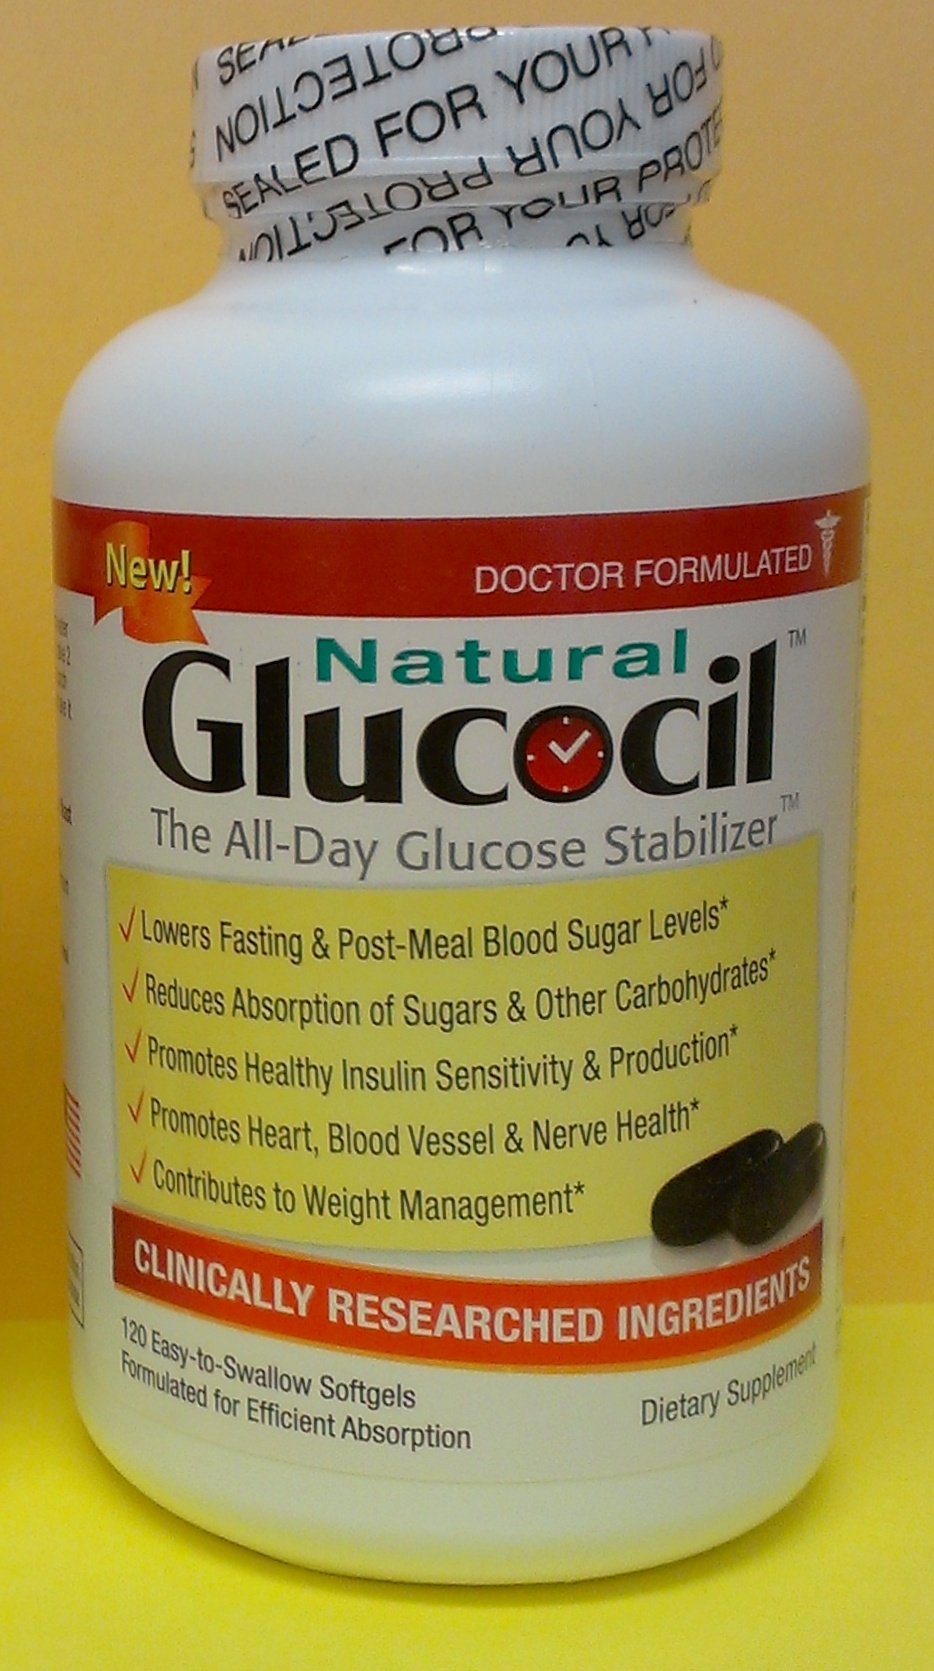 Illegally Sold Diabetes Treatments - Glucocil